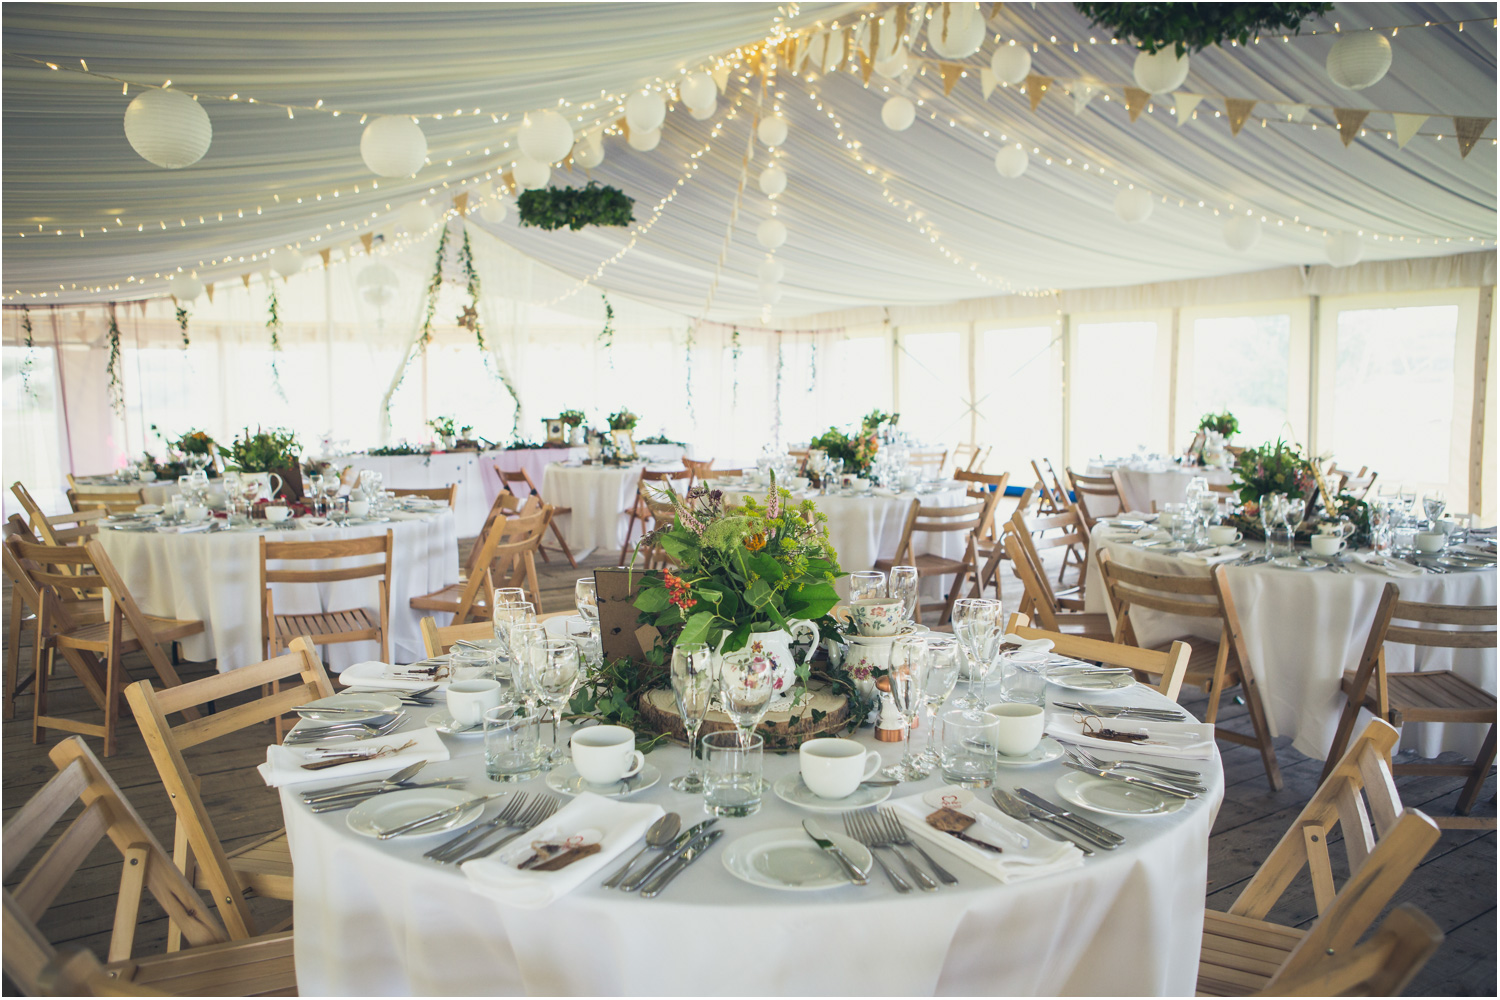 4 compact hoops of greenery with round tables